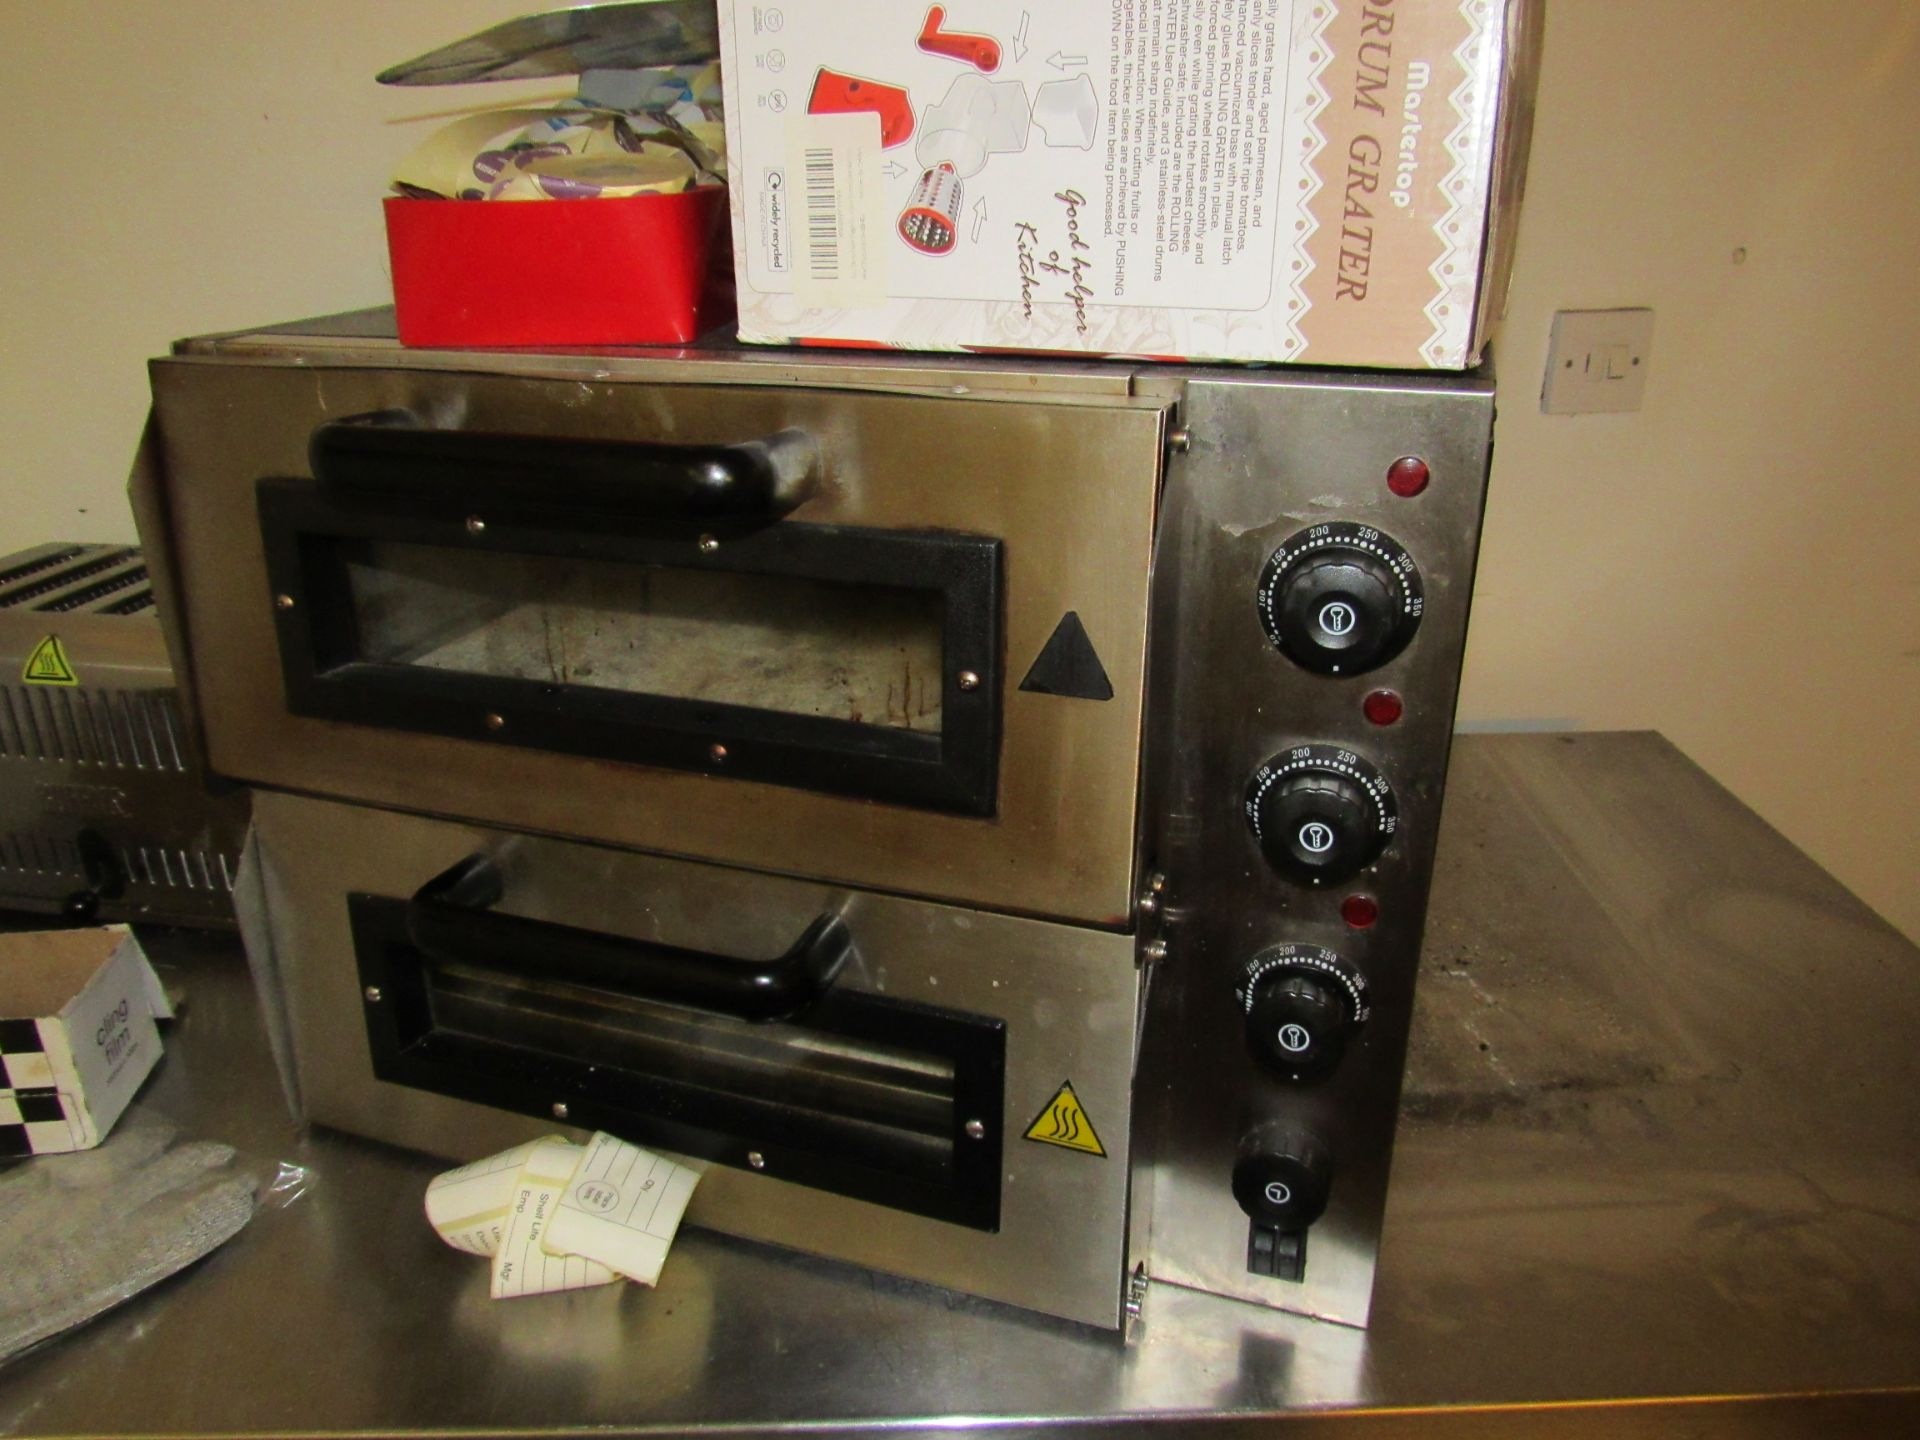 Electric Pizza Oven, P2PT 560x566x400mm